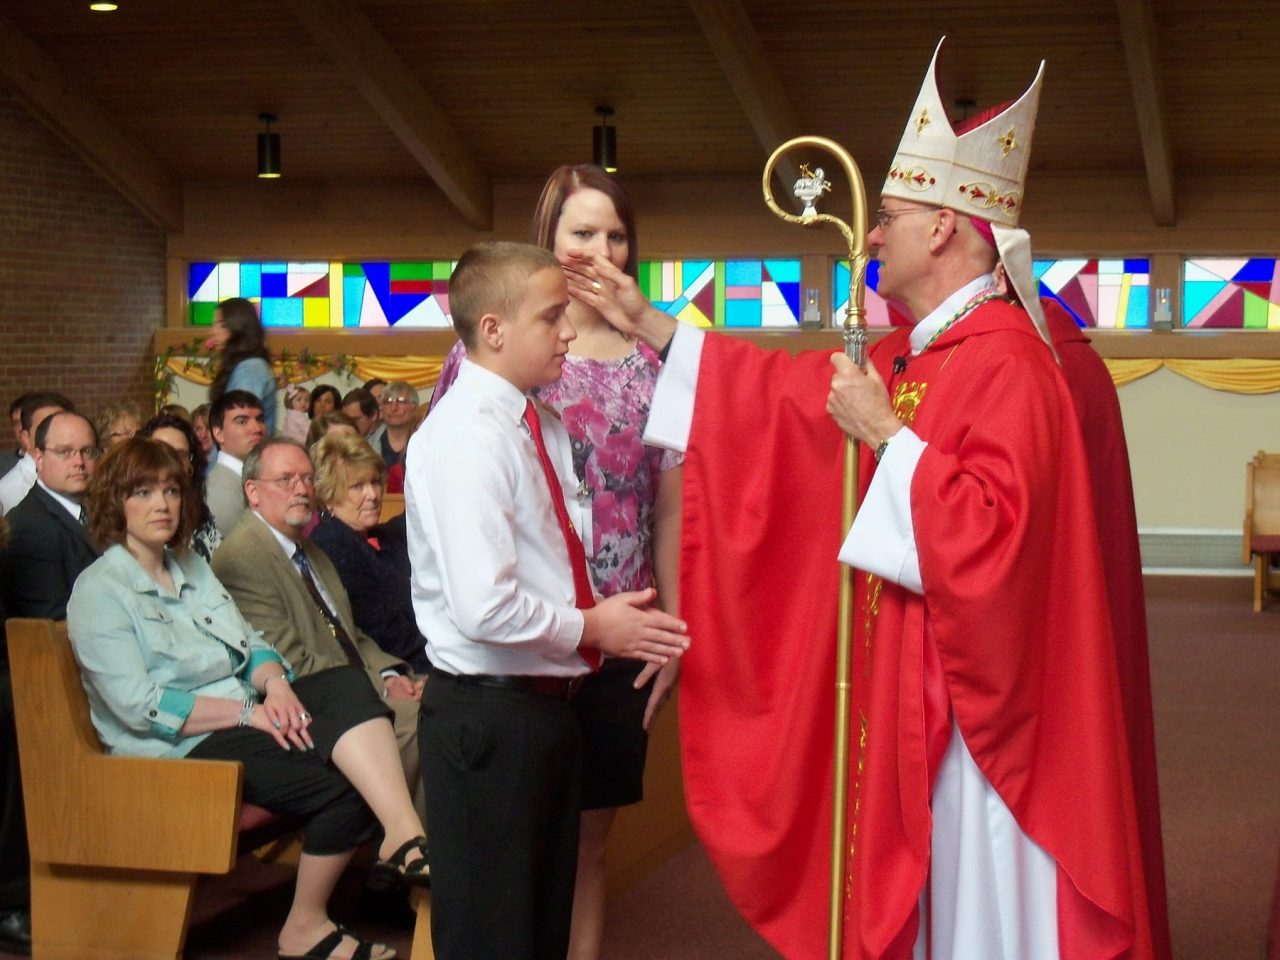 Find out why most Catholics pick Confirmation names